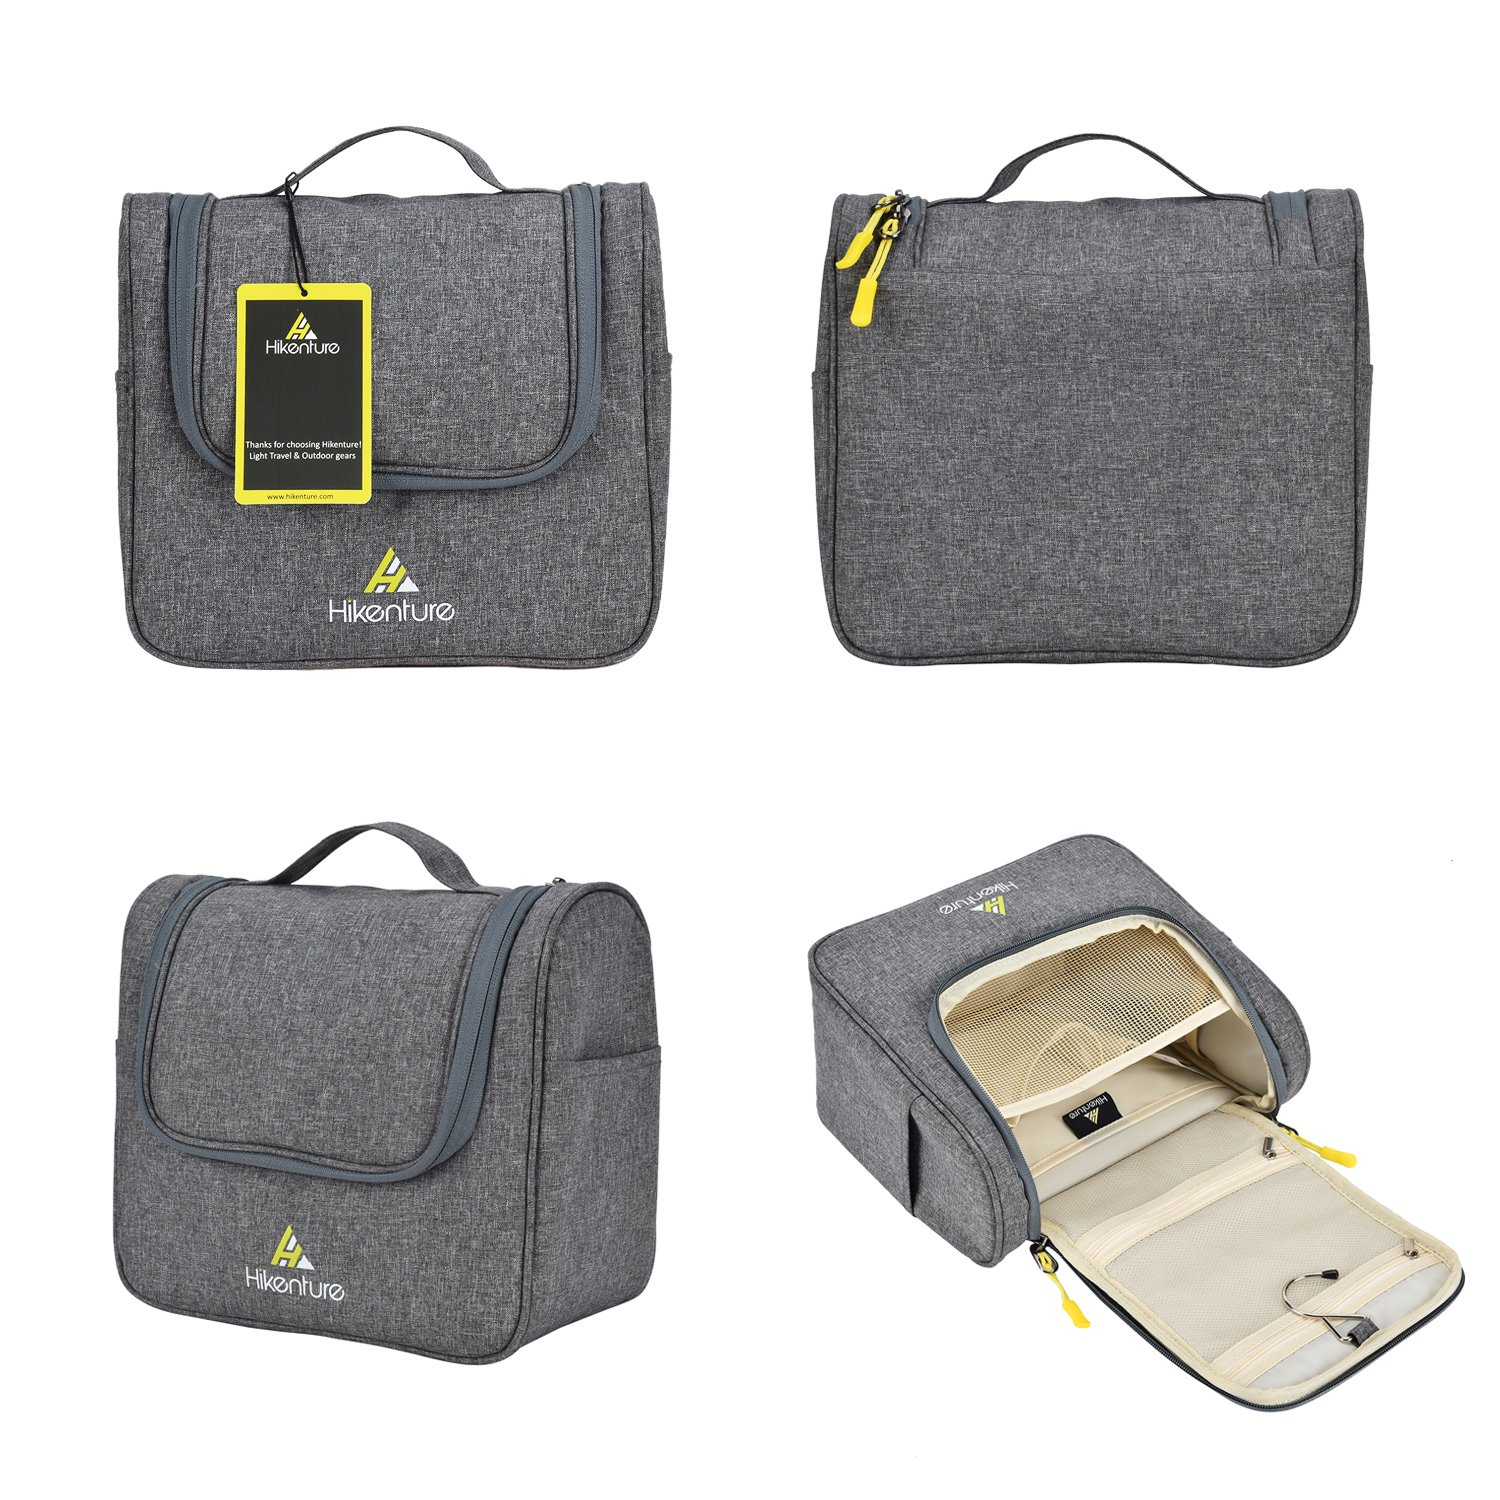 Travel Hanging Toiletry Bag by Hikenture | Cosmetics, Makeup and Toiletries Organizer | Compact Bathroom Storage | TSA Friendly | Home, Gym, Airplane, Hotel, Car Use(Grey) by Hikenture (Image #7)